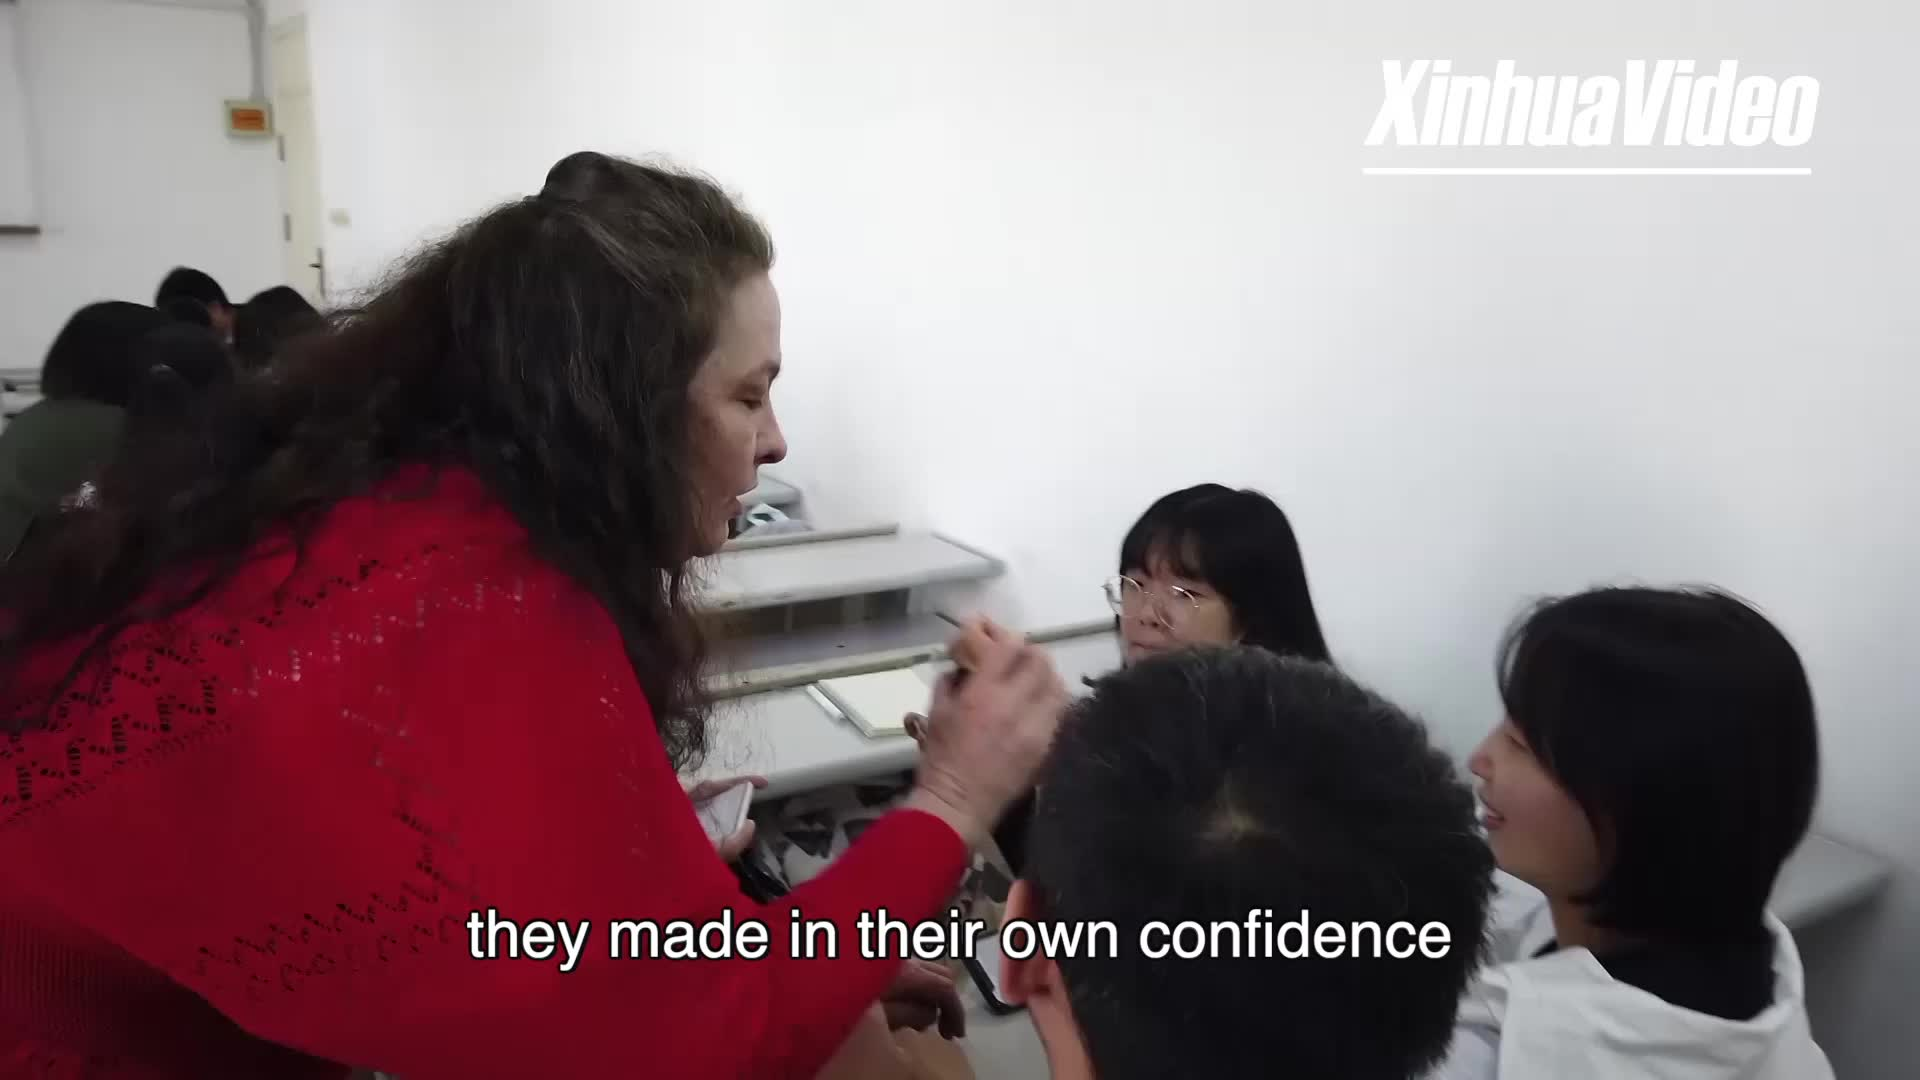 U.S. teacher sees promise in China's young generations